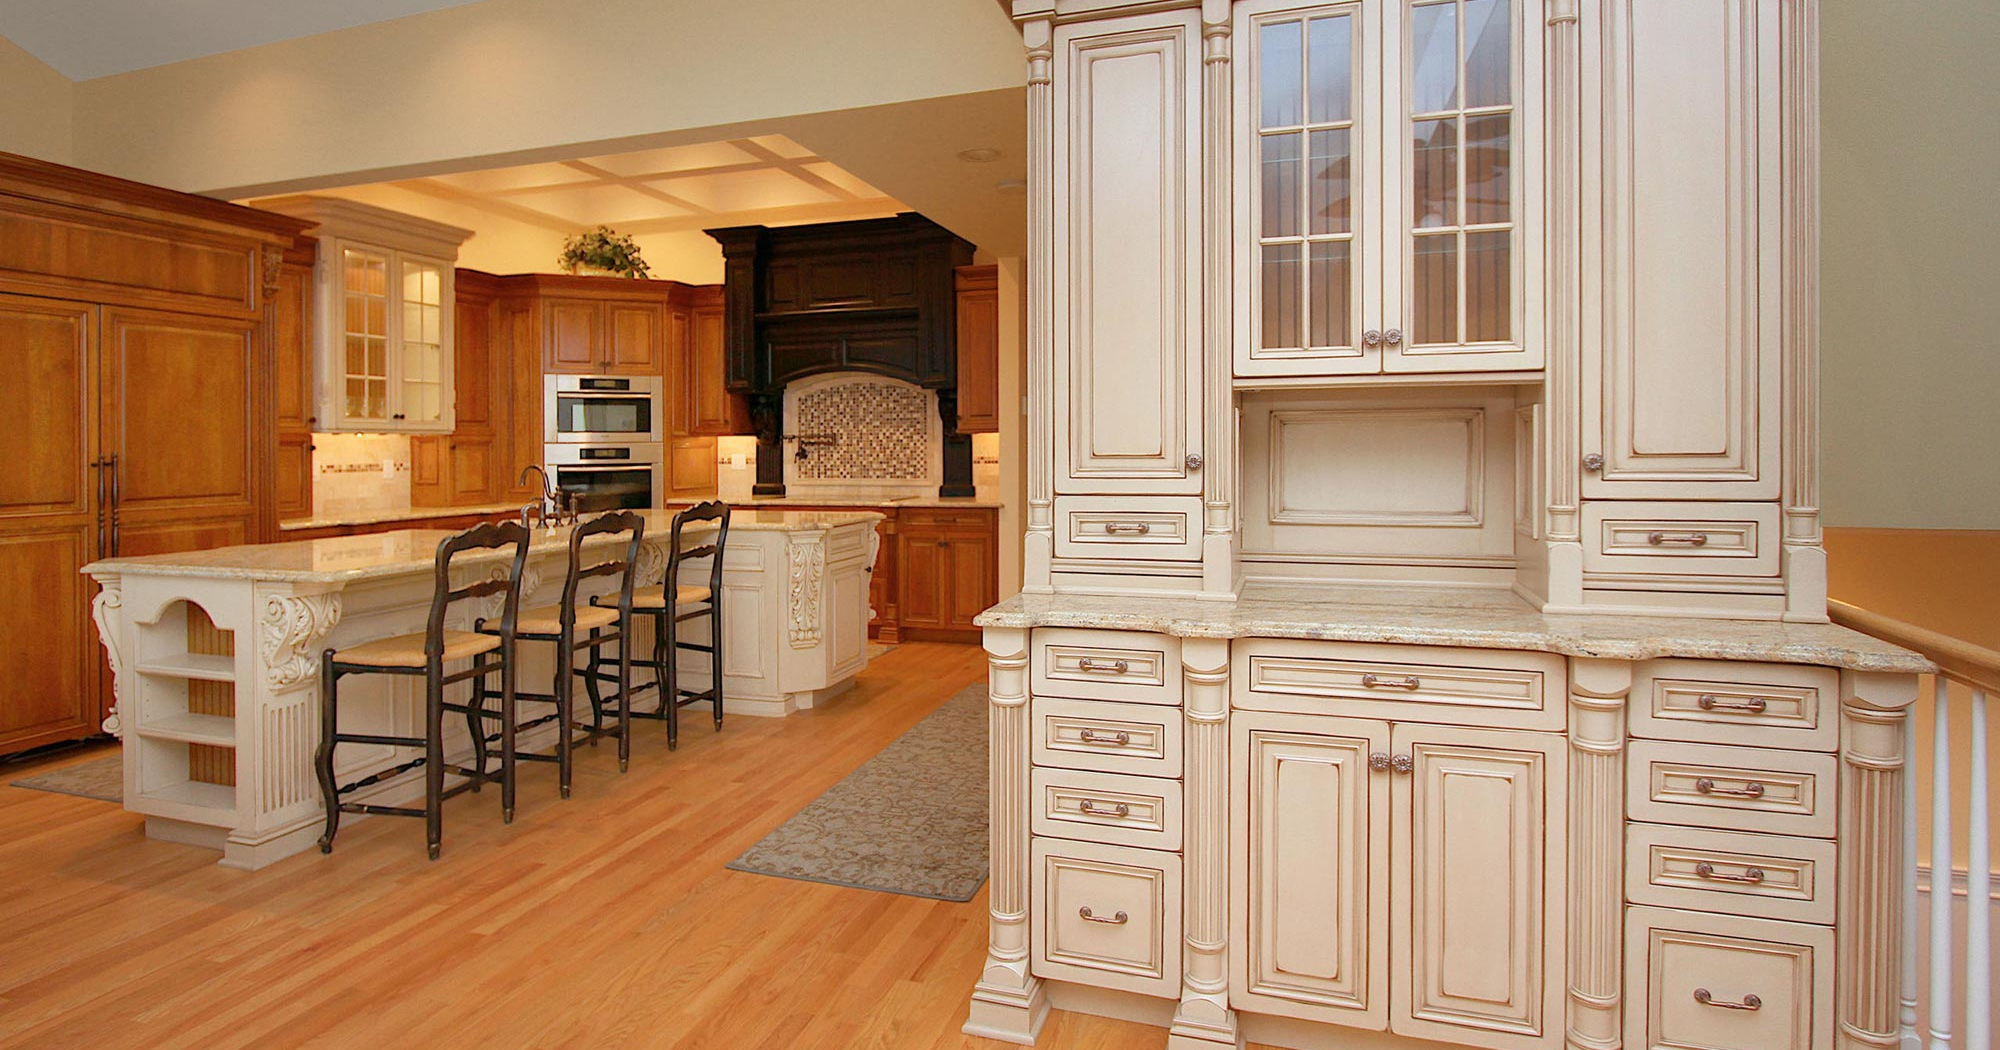 Mark Dubree Kitchens Baths Interiors Custom Cabinetry And